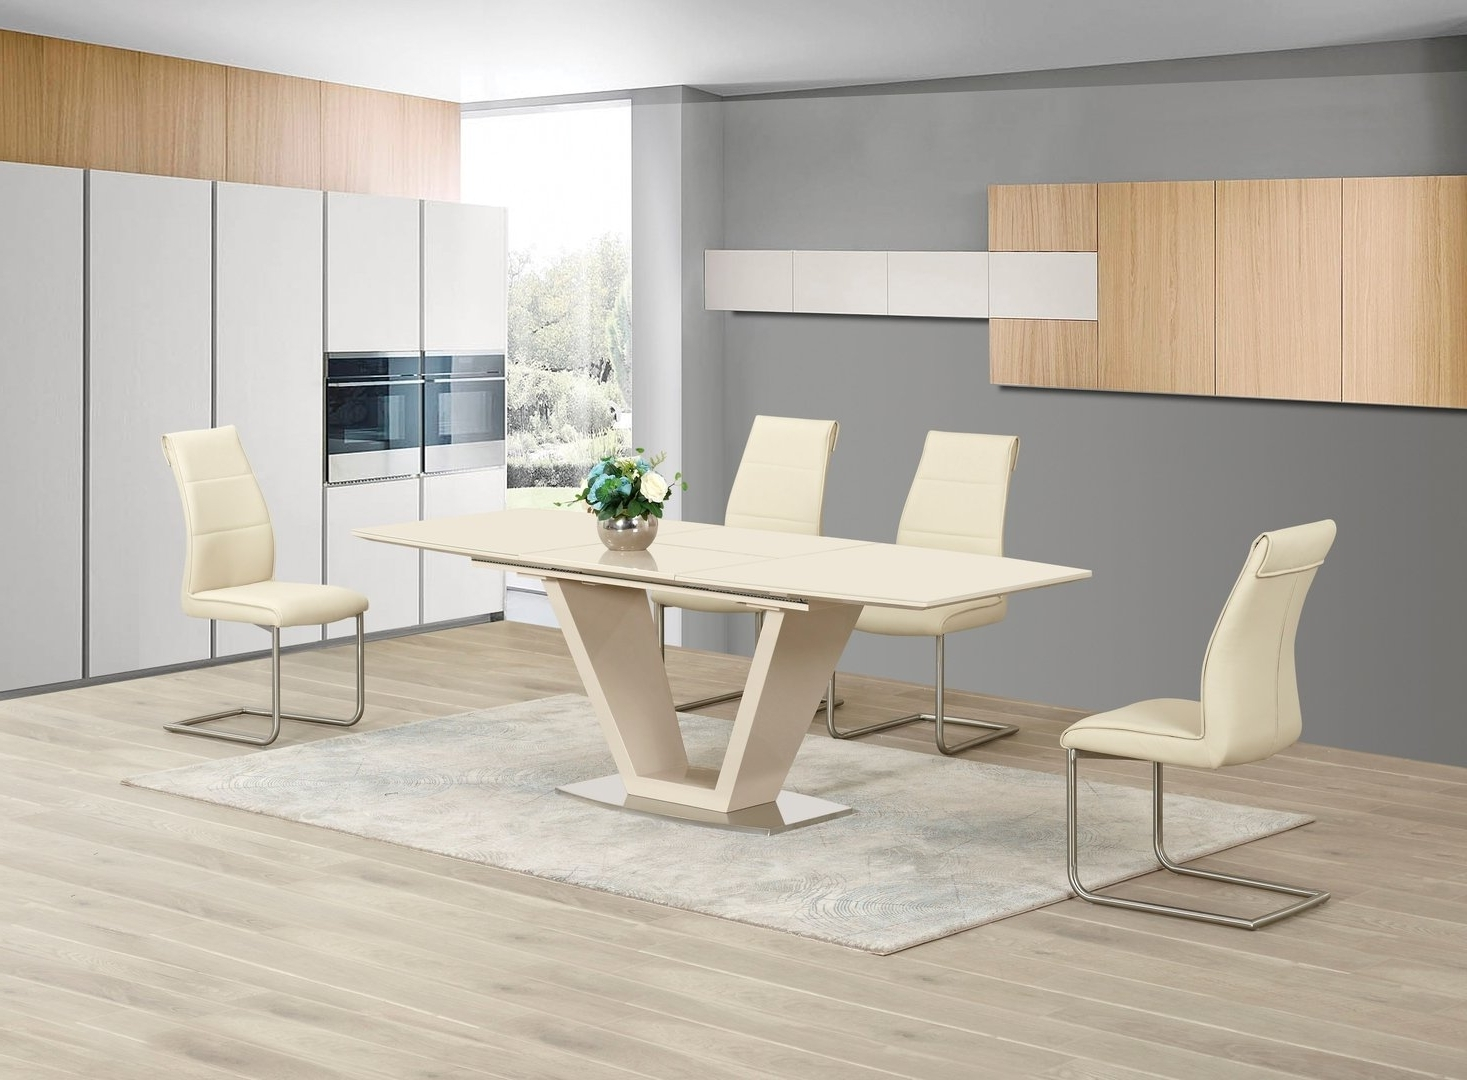 Best And Newest Hi Gloss Dining Tables Sets Throughout Hi Gloss Dining Table Sets – Castrophotos (View 8 of 25)